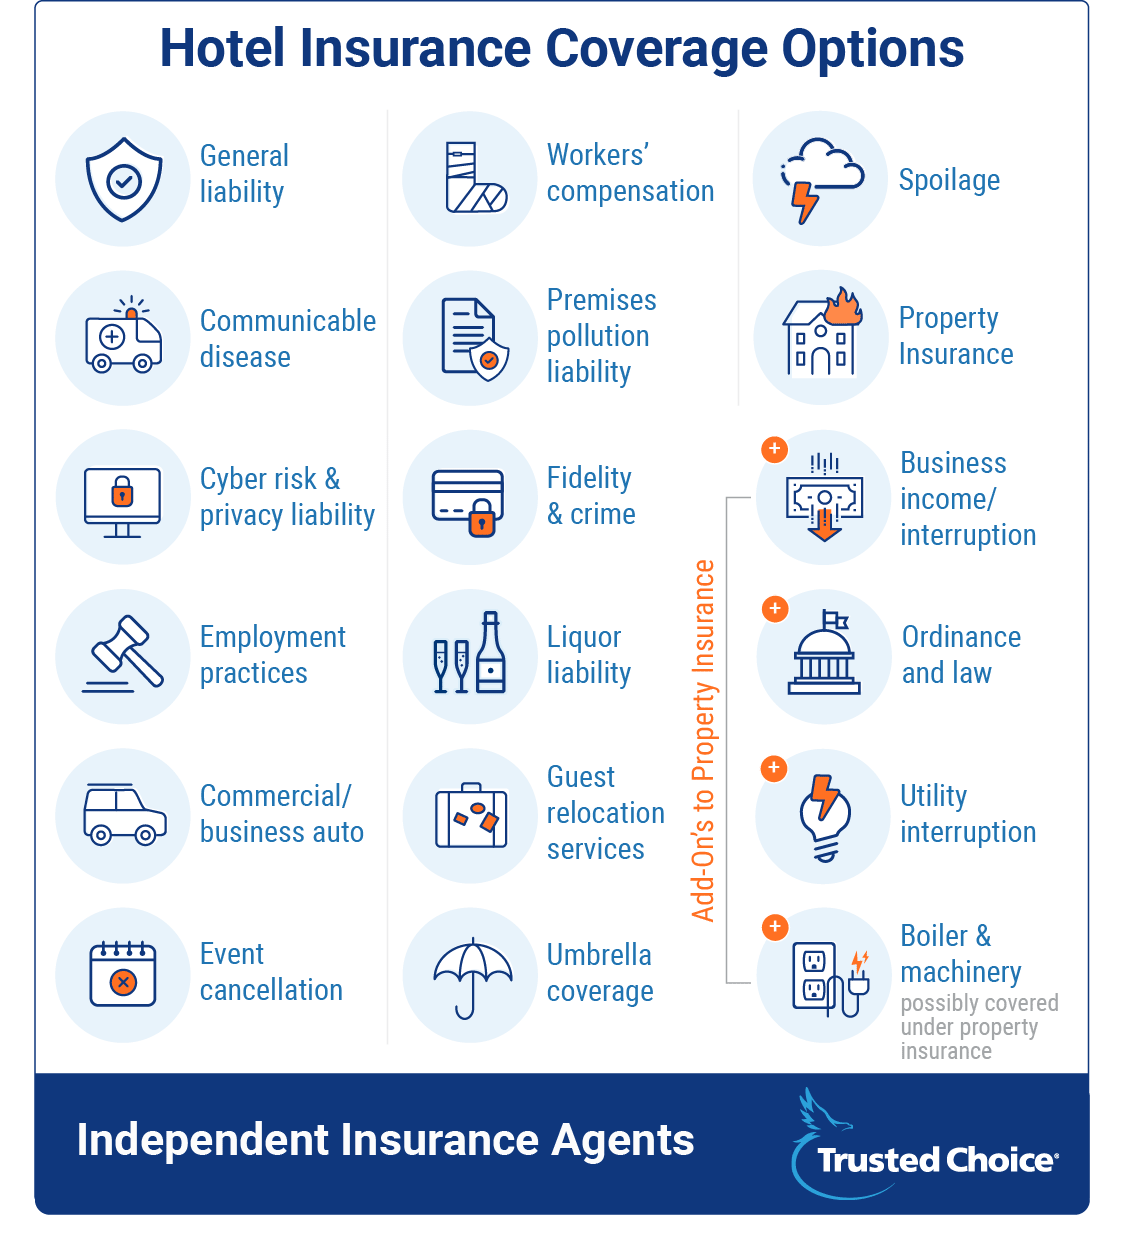 hotel insurance coverage options